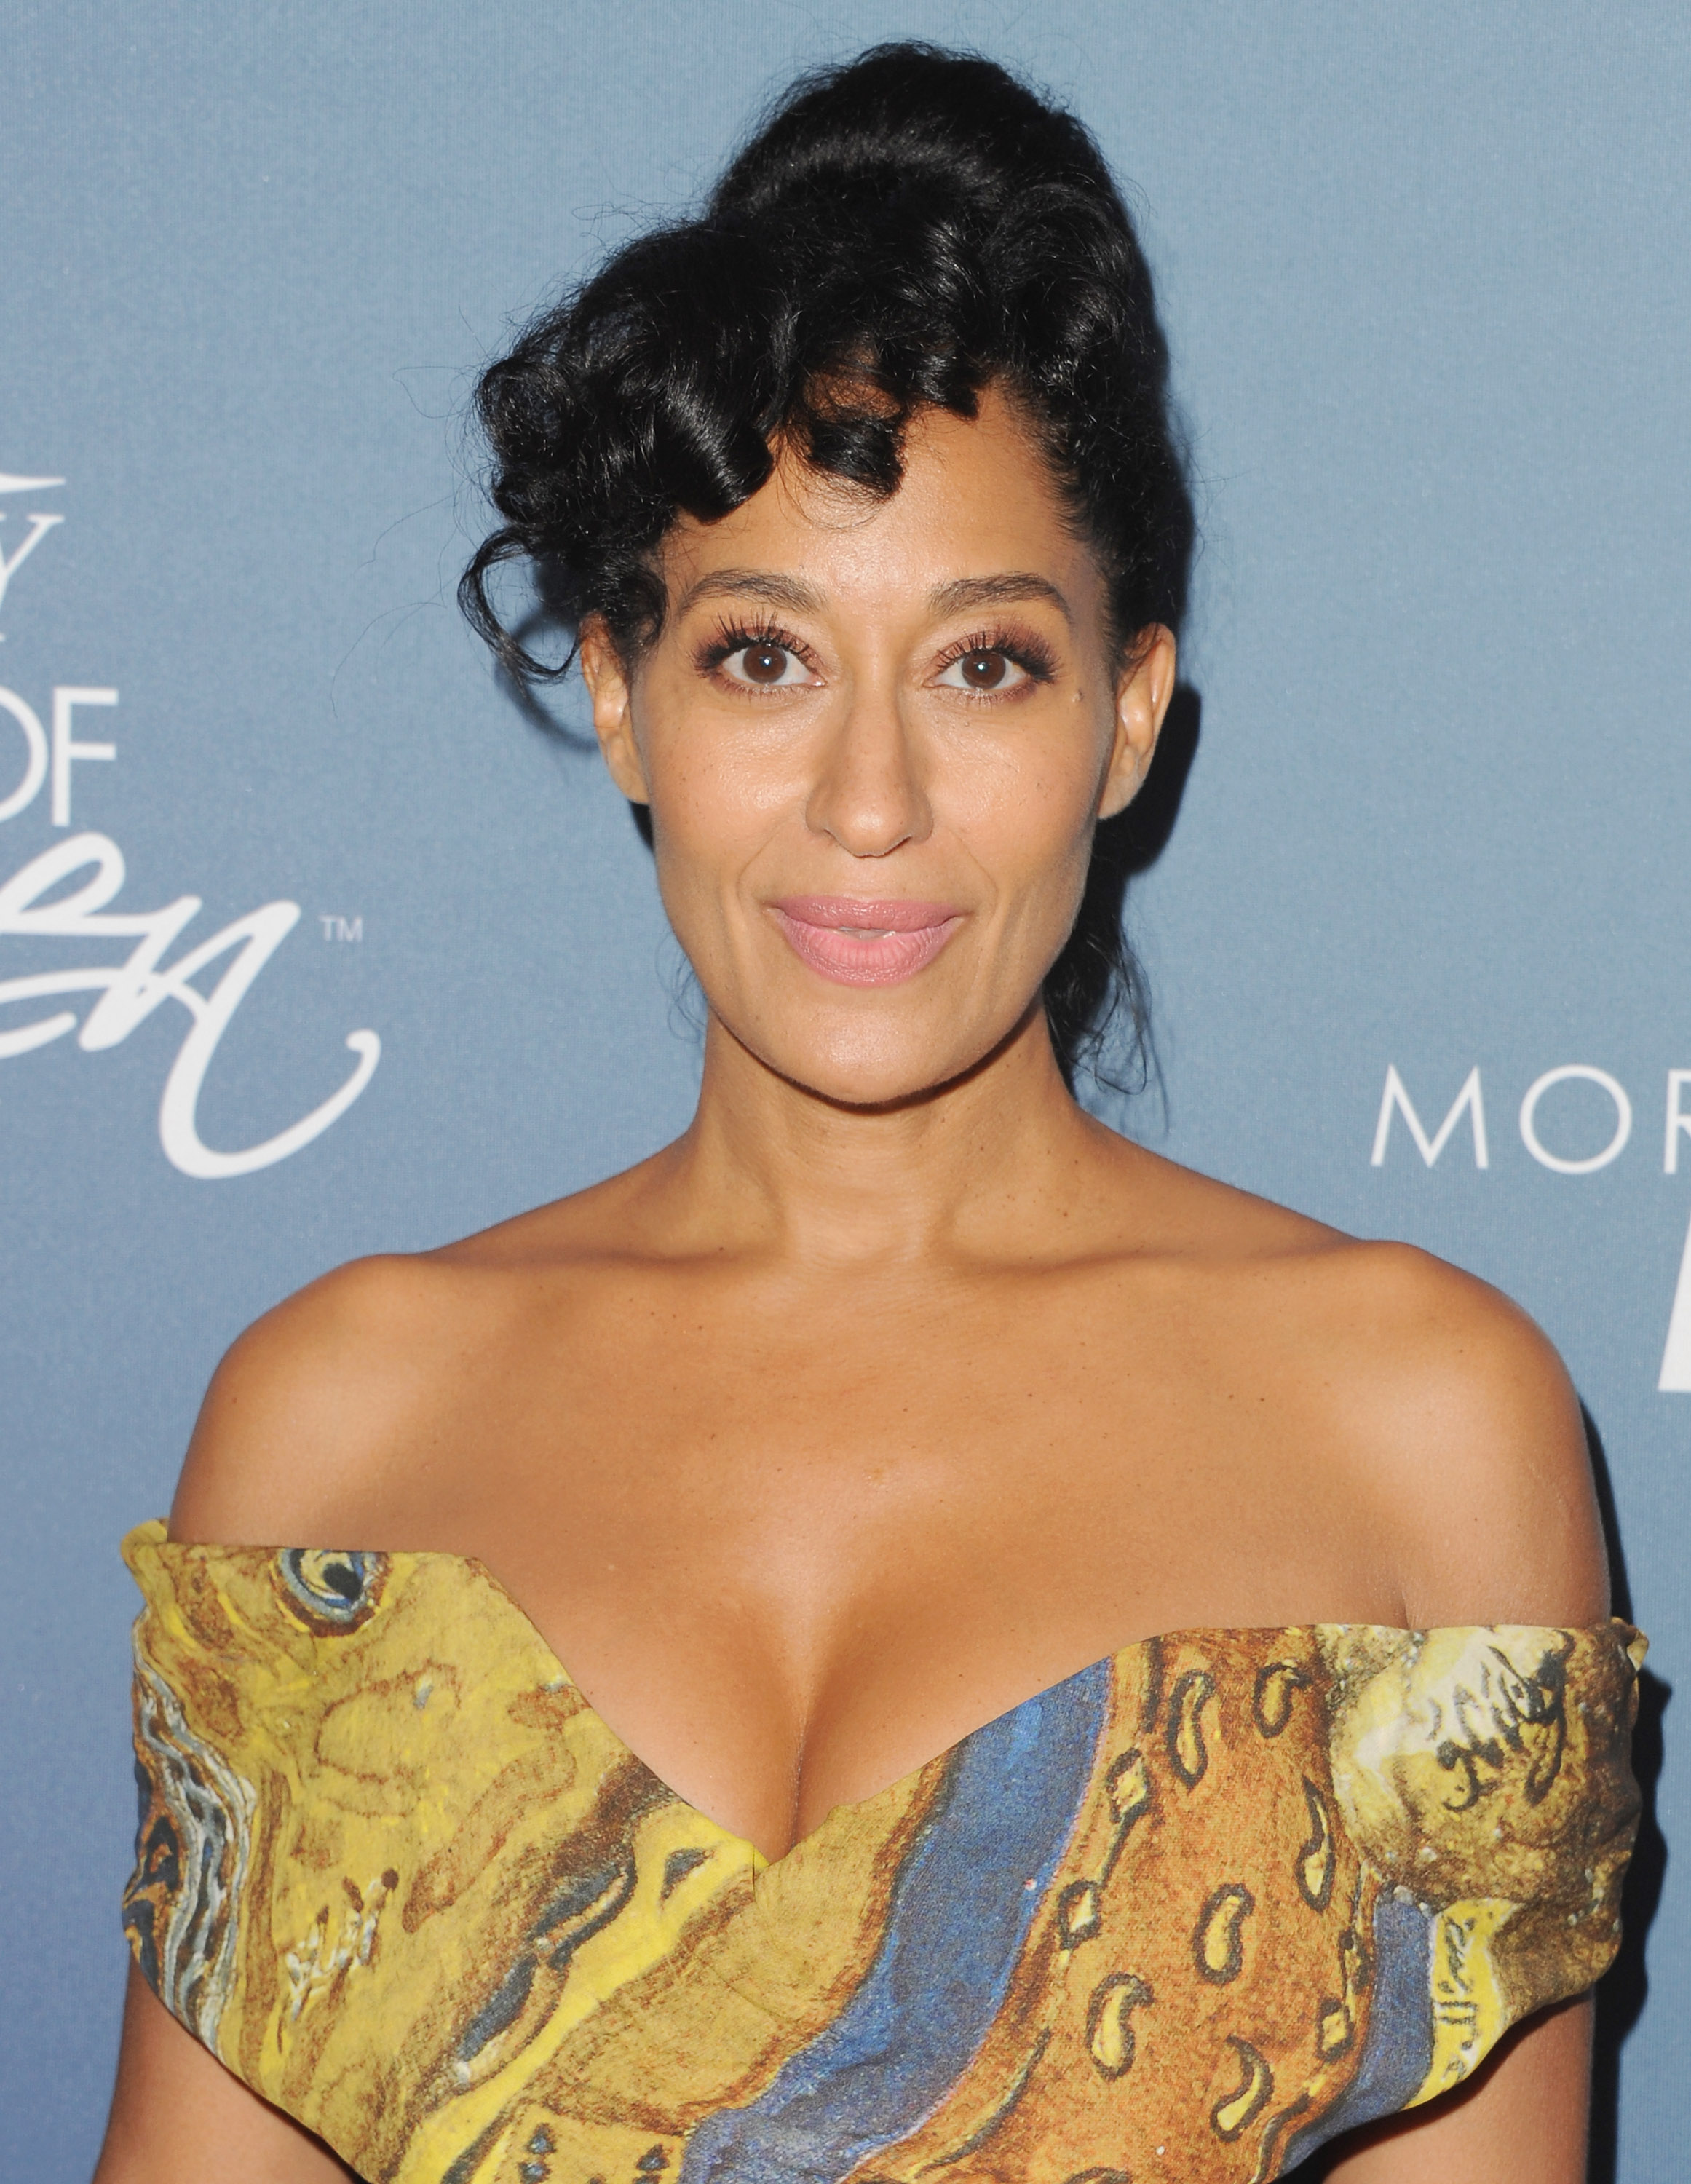 News: Tracee Ellis Ross Shares Her Complete BeautyRoutine